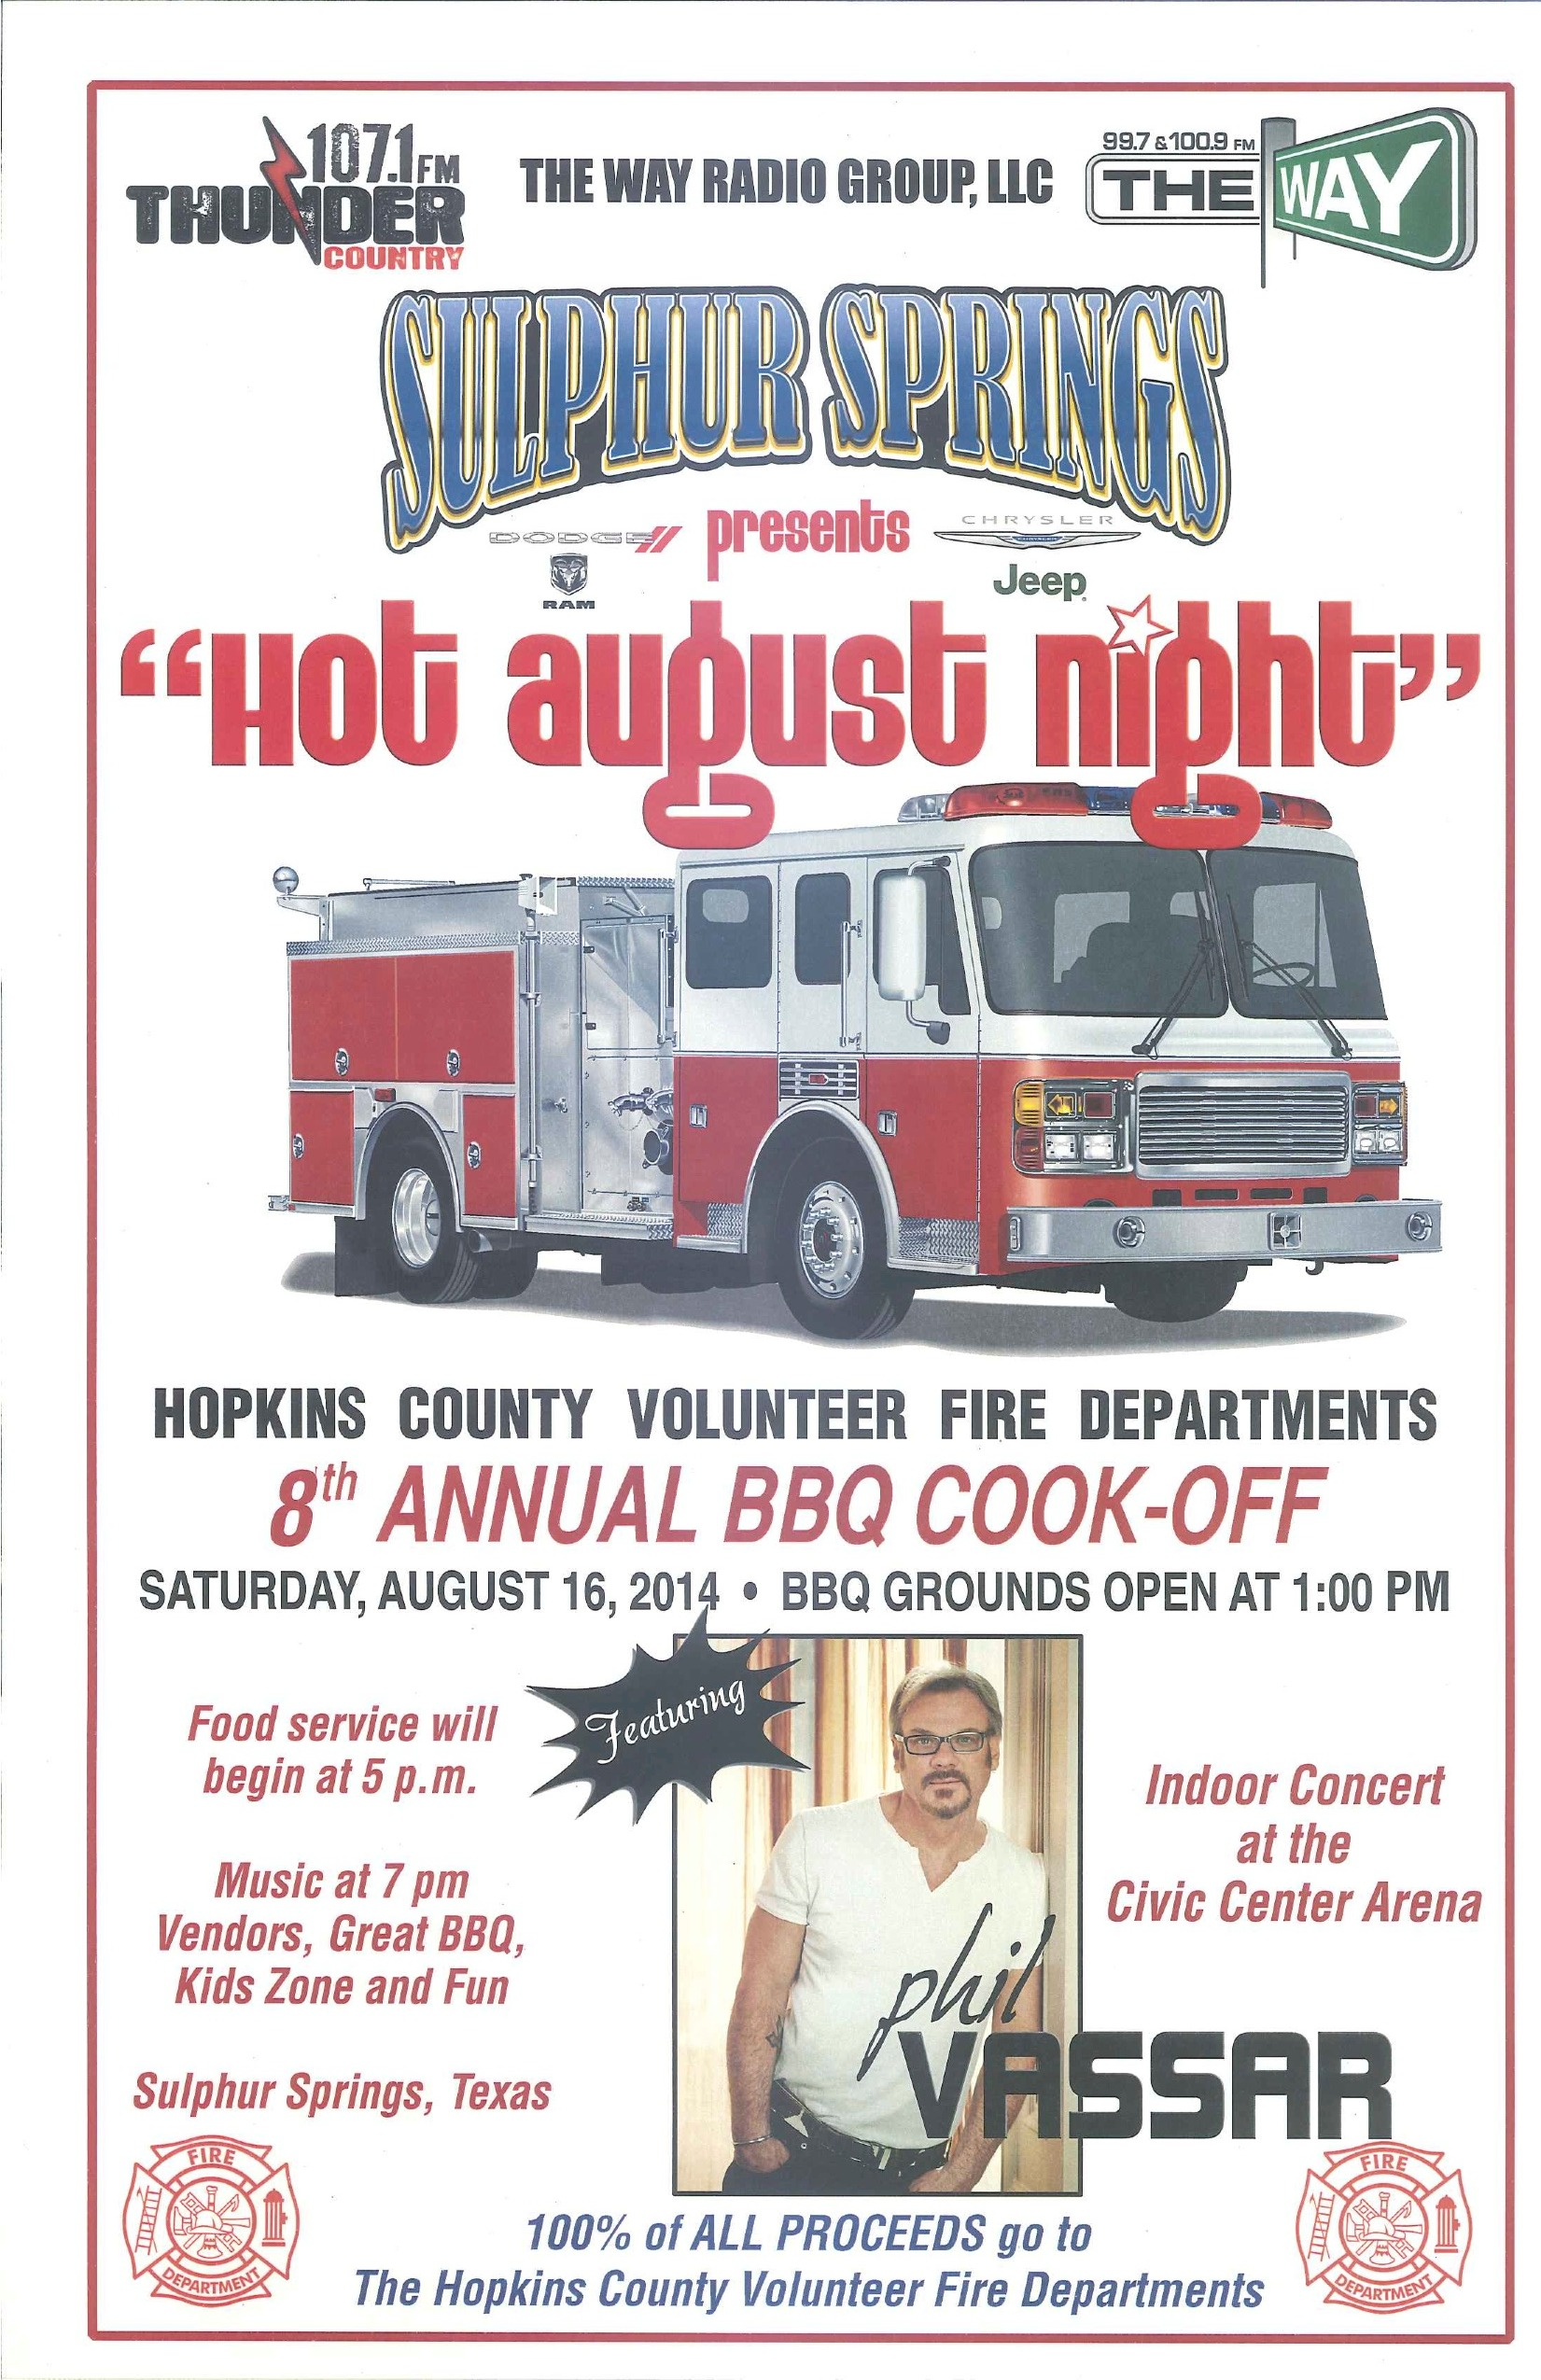 Hot August Nights Poster